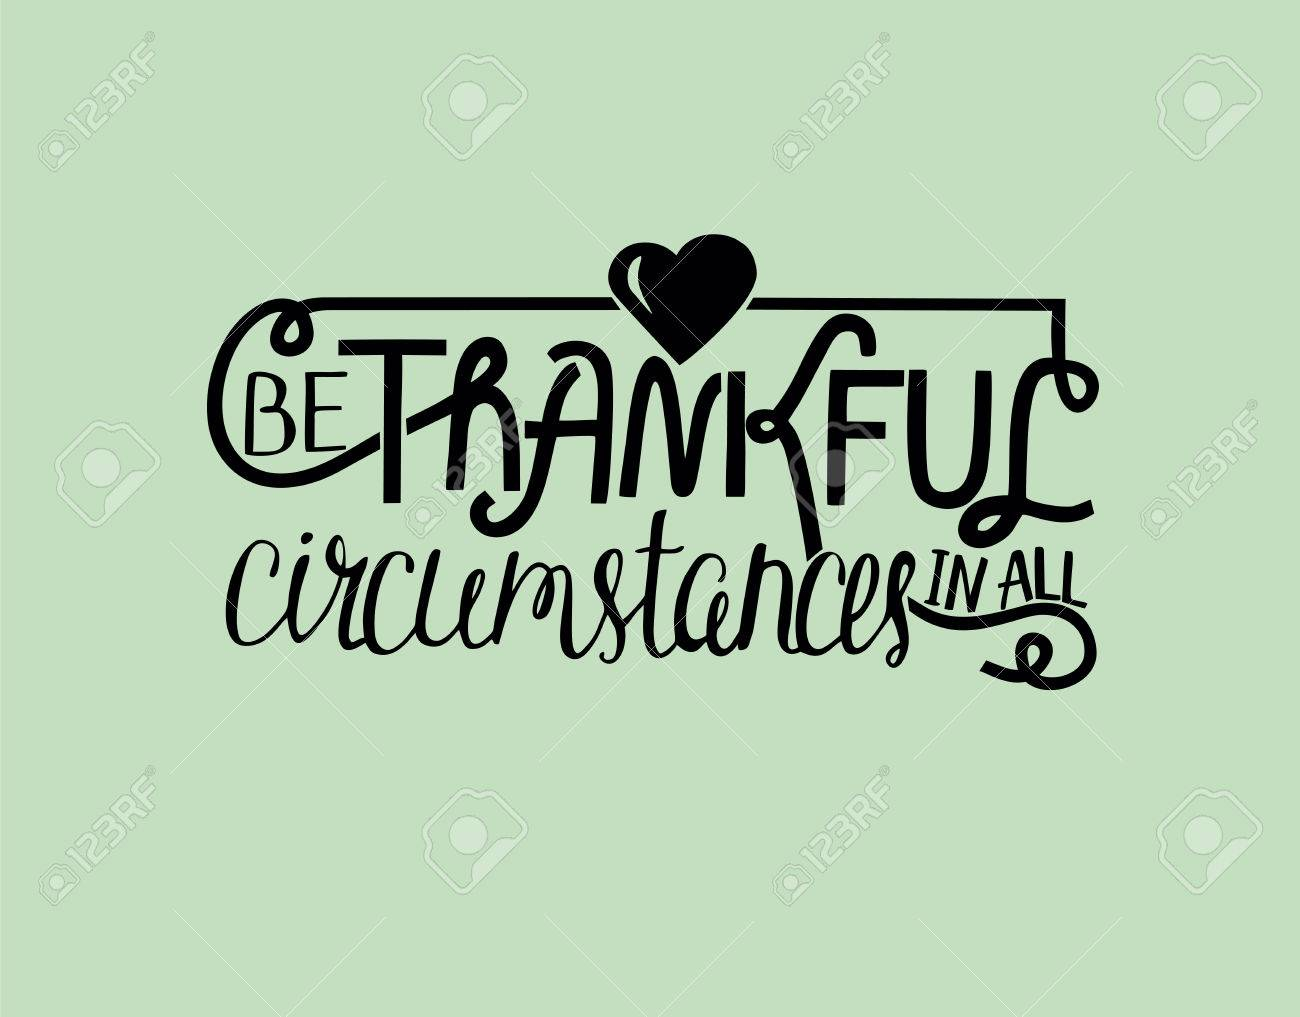 Superieur Manual Lettering Be Thankful With Heart. Biblical Background. Christian  Poster. Quote Stock Vector